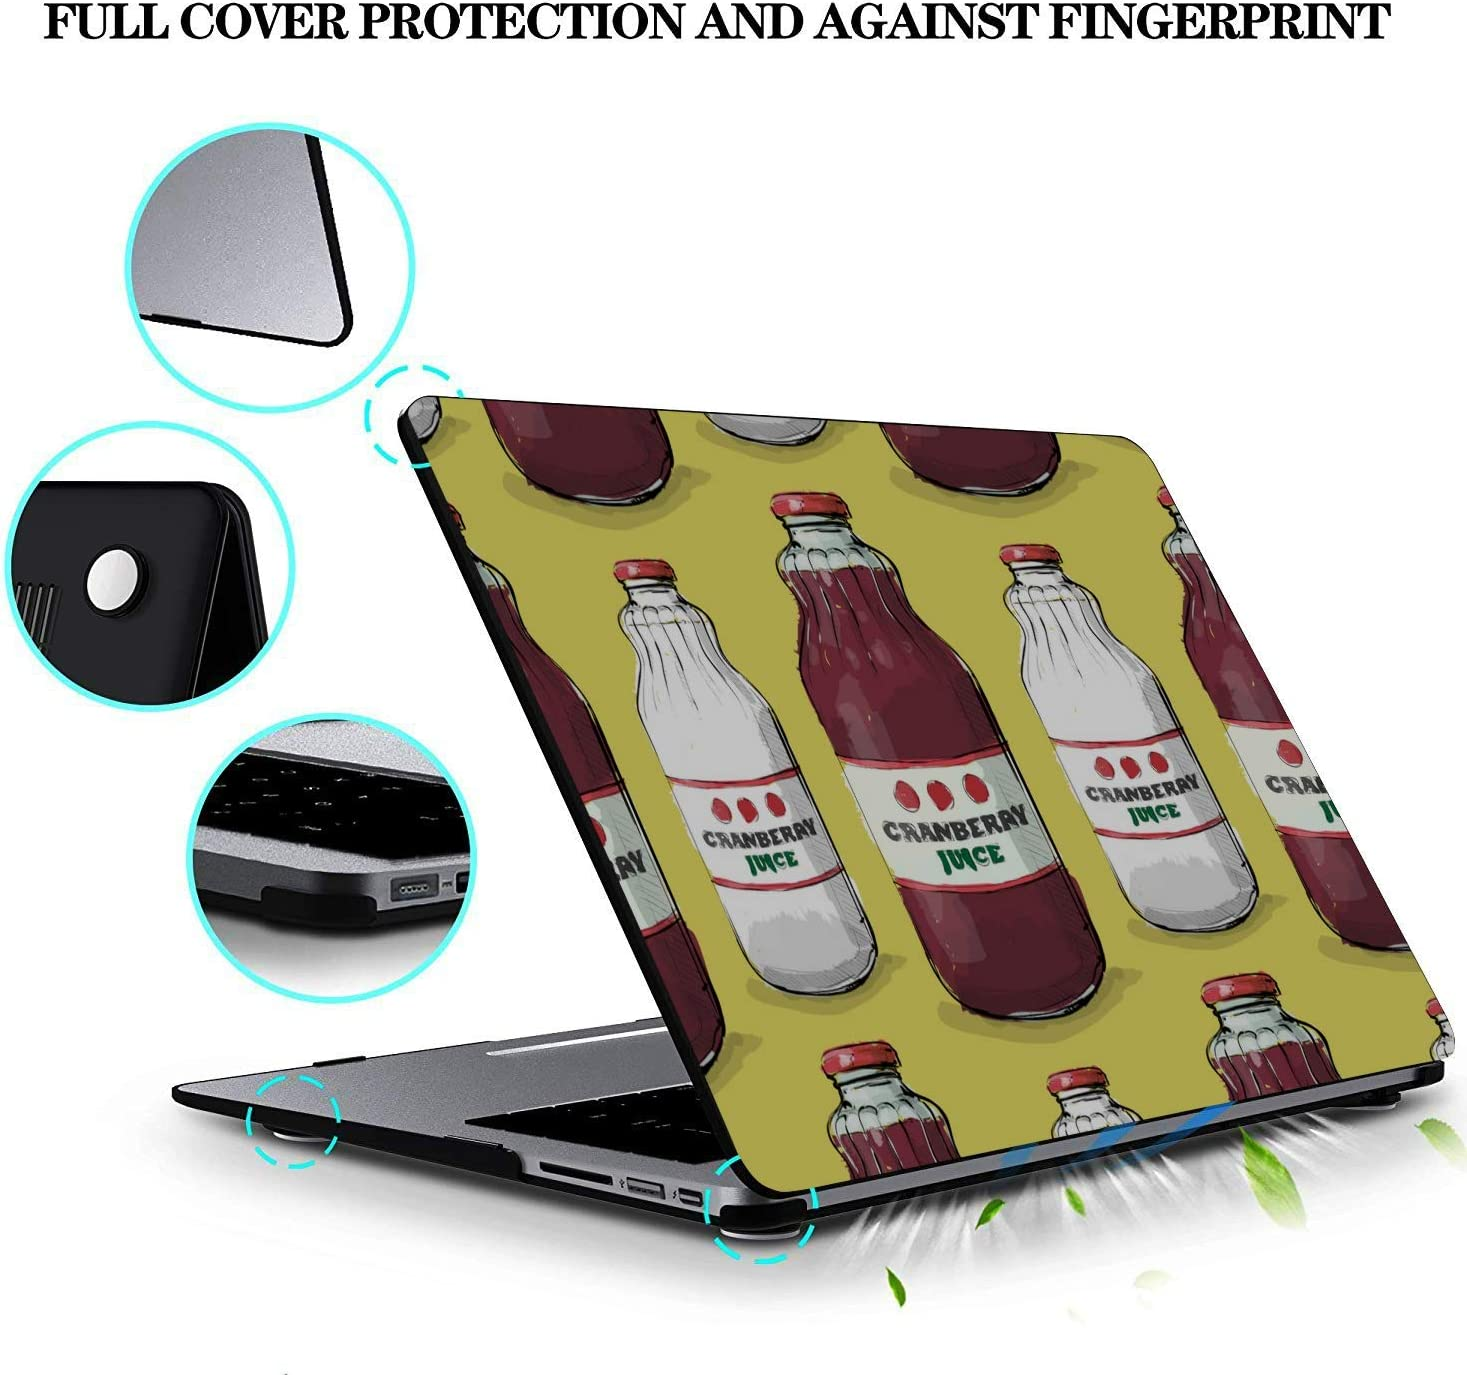 MacBook Air Covers Summer Sour Sweet Drink Juice Box Plastic Hard Shell Compatible Mac Air 11 Pro 13 15 Mackbook Case Protection for MacBook 2016-2019 Version